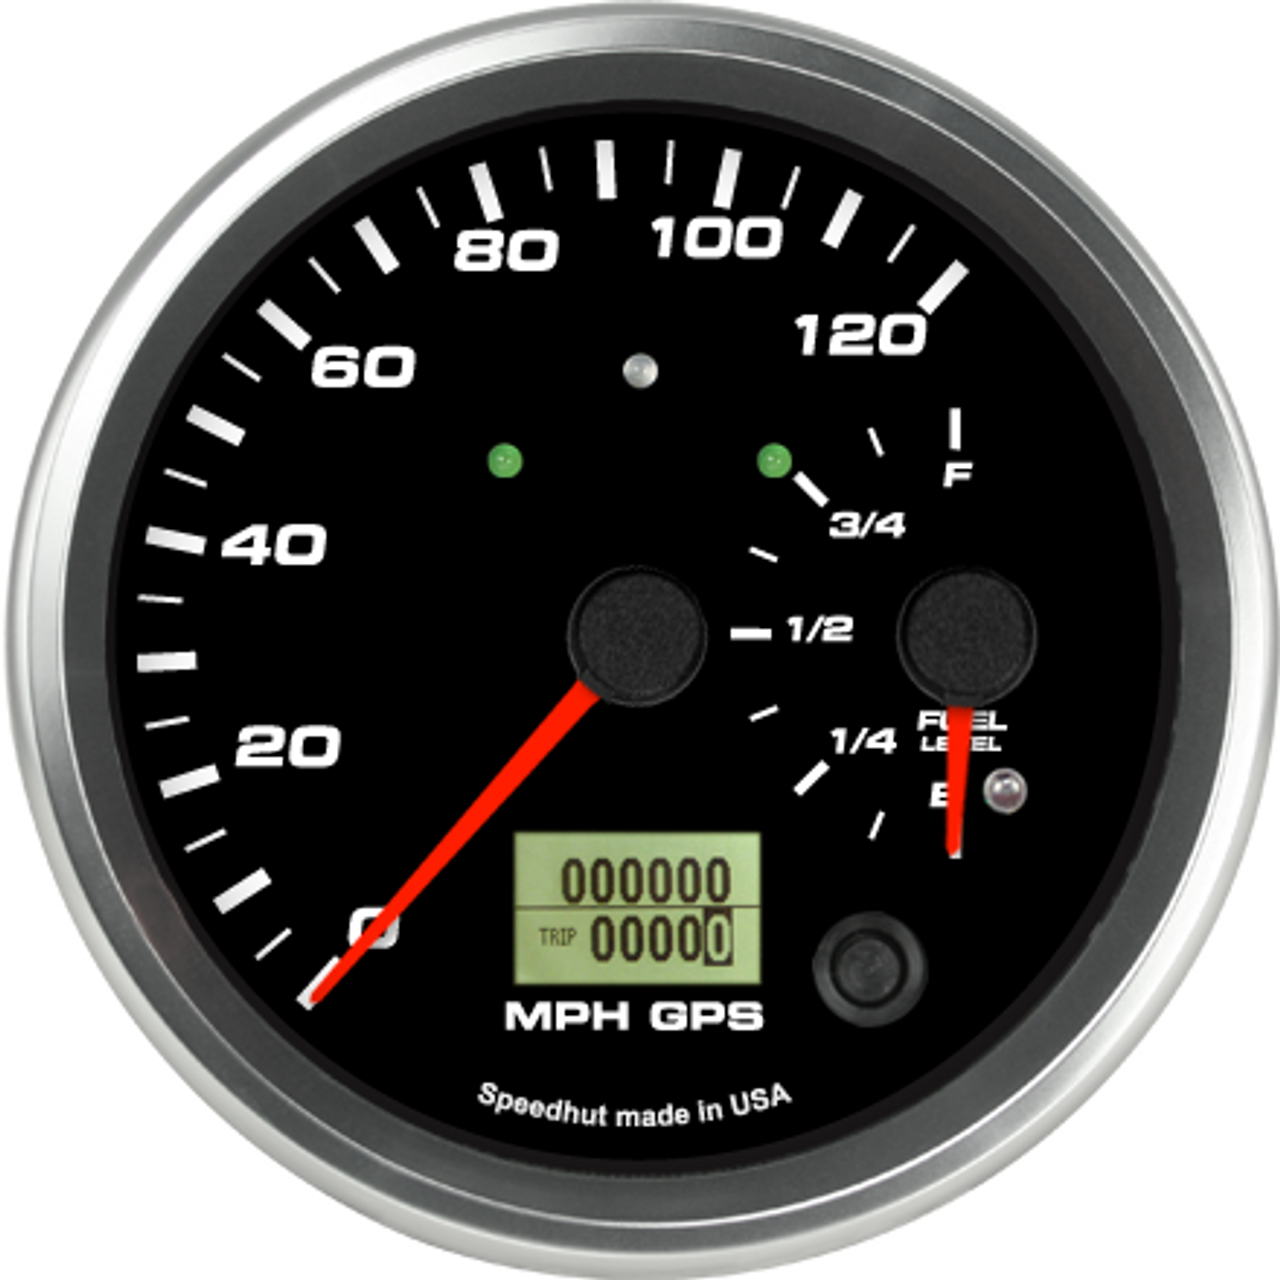 """4-1/2"""" Dual Gauge - 120mph GPS Speedometer / Fuel Level (w/ turn signal and high beam)"""